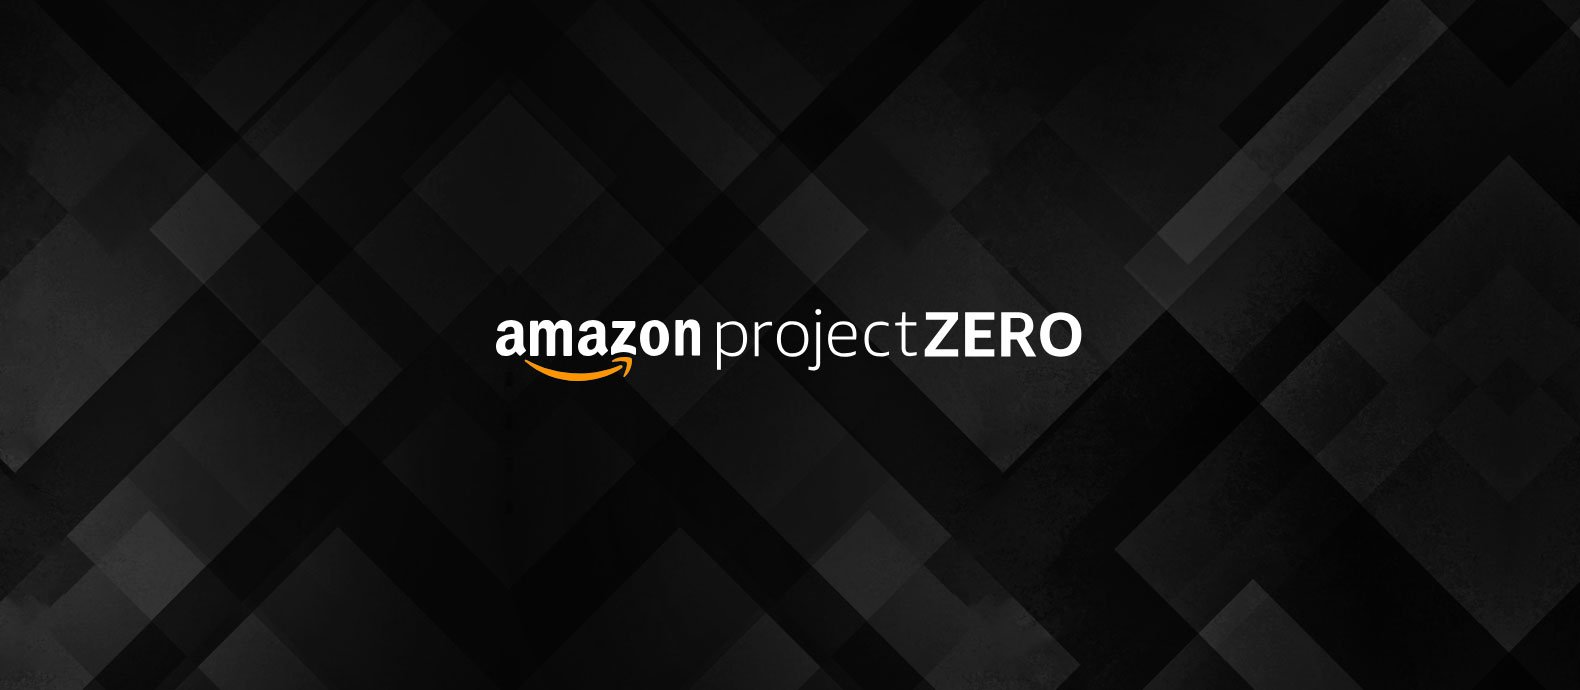 Amazon launches Project Zero, aiming to eliminate counterfeits on its platform